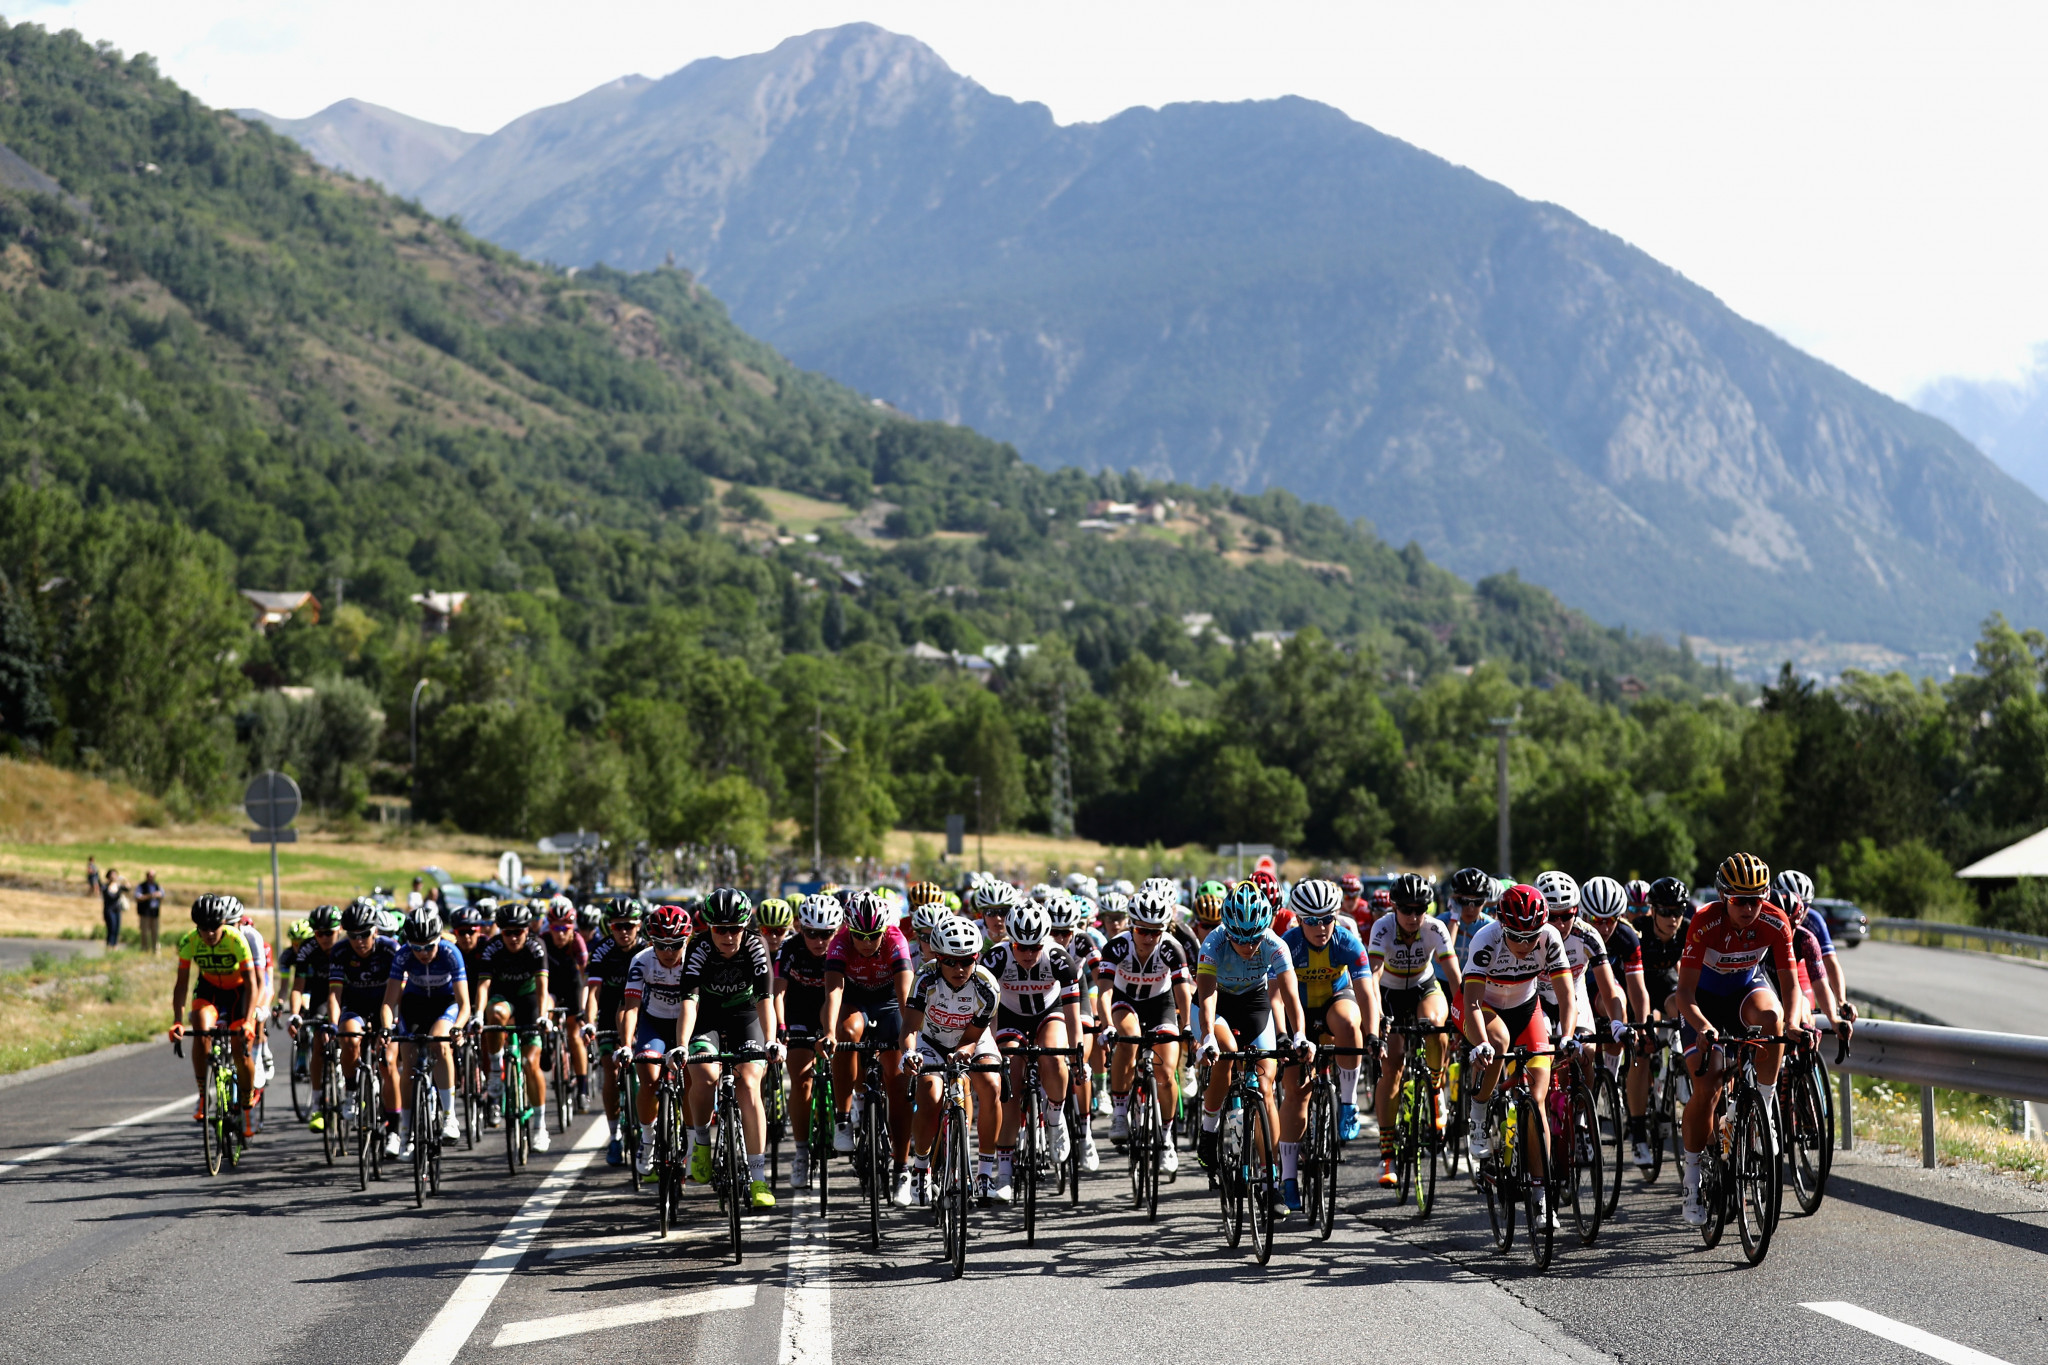 Riders to tackle climber friendly route on one-day La Course by the Tour de France